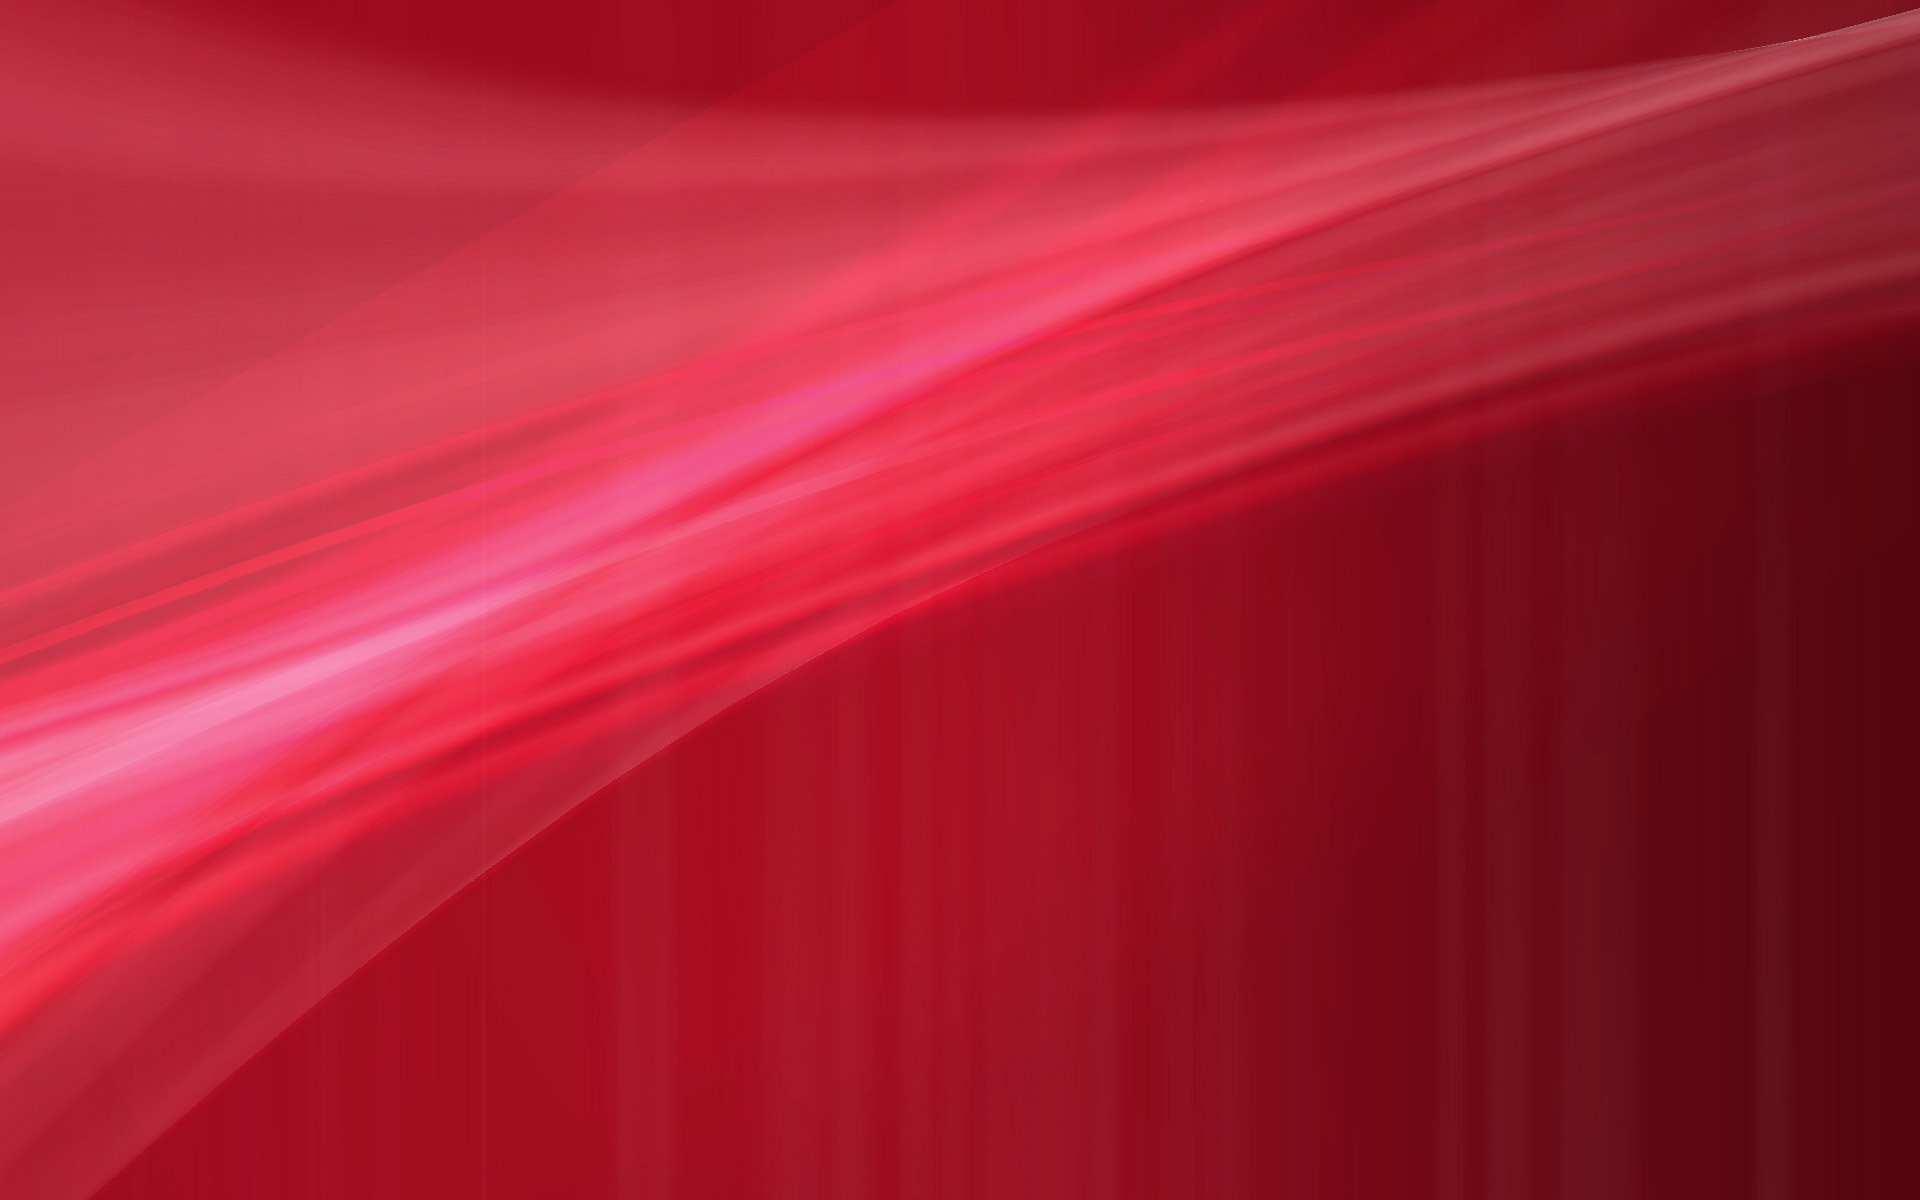 HD Wallpapers Red in Abstract